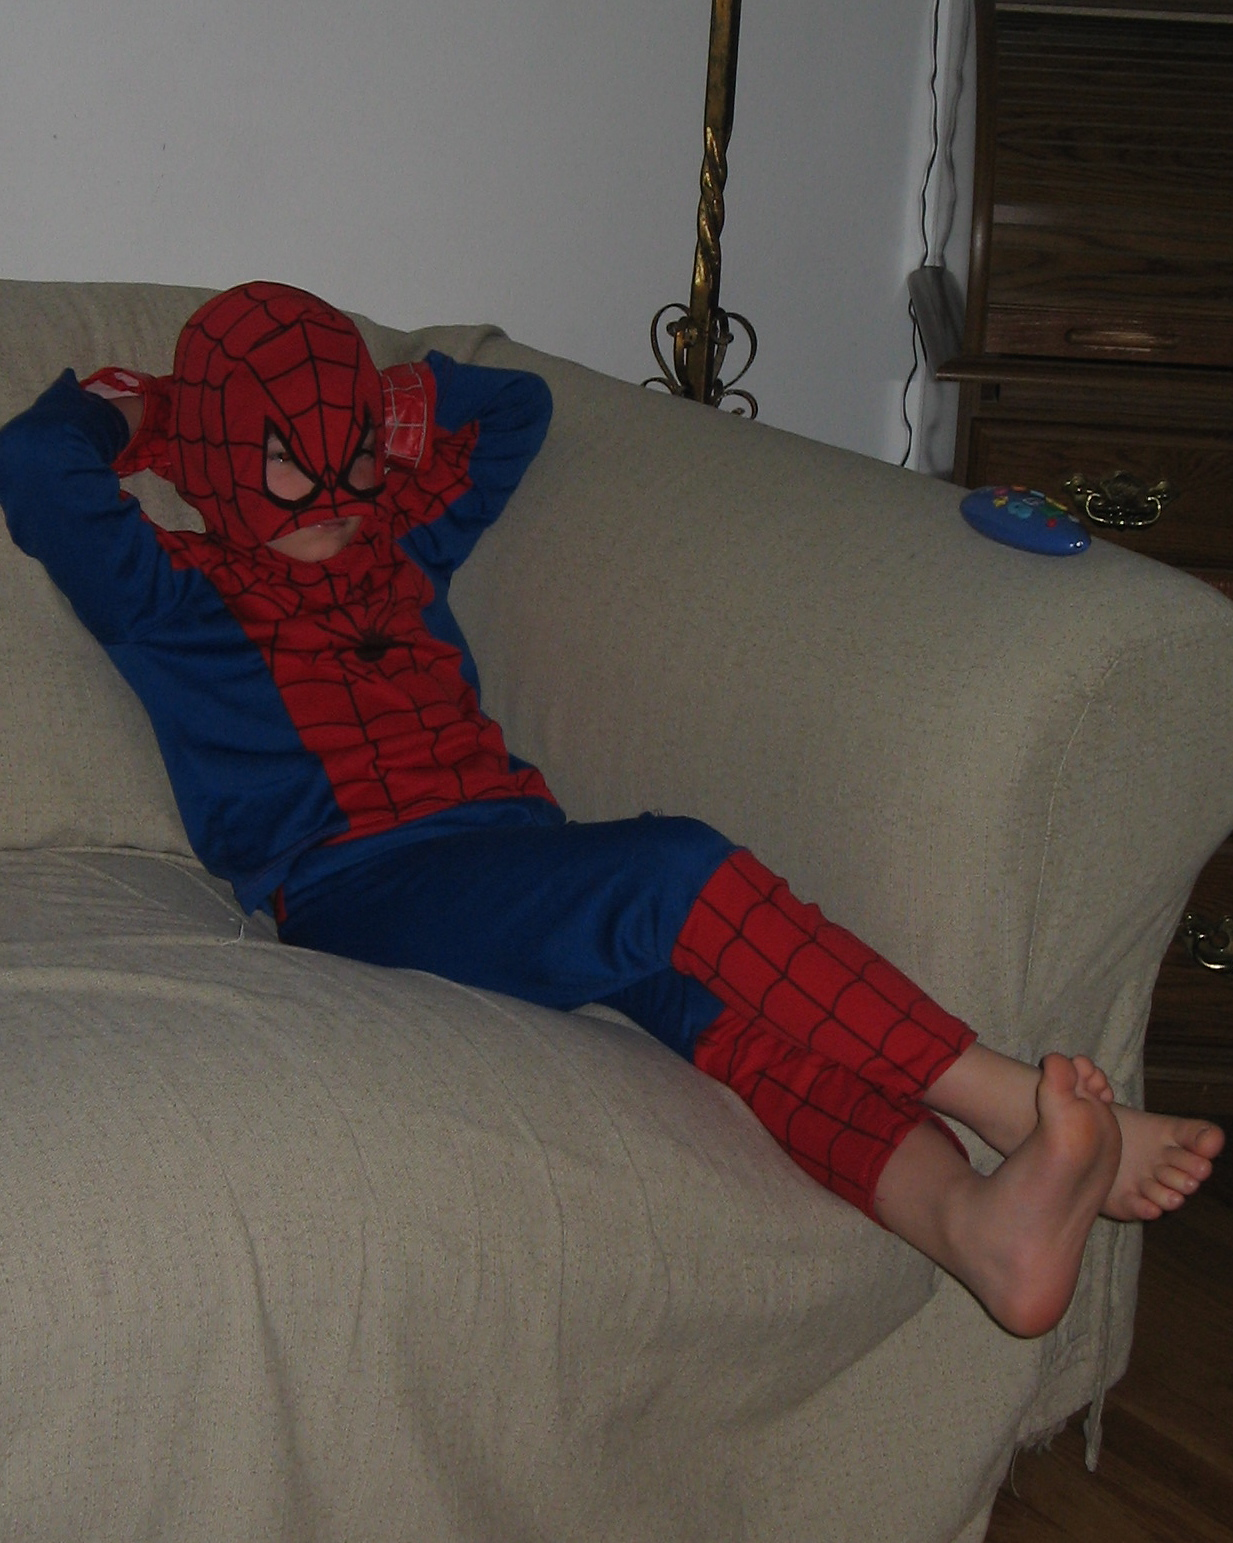 Even superheros deserve to relax